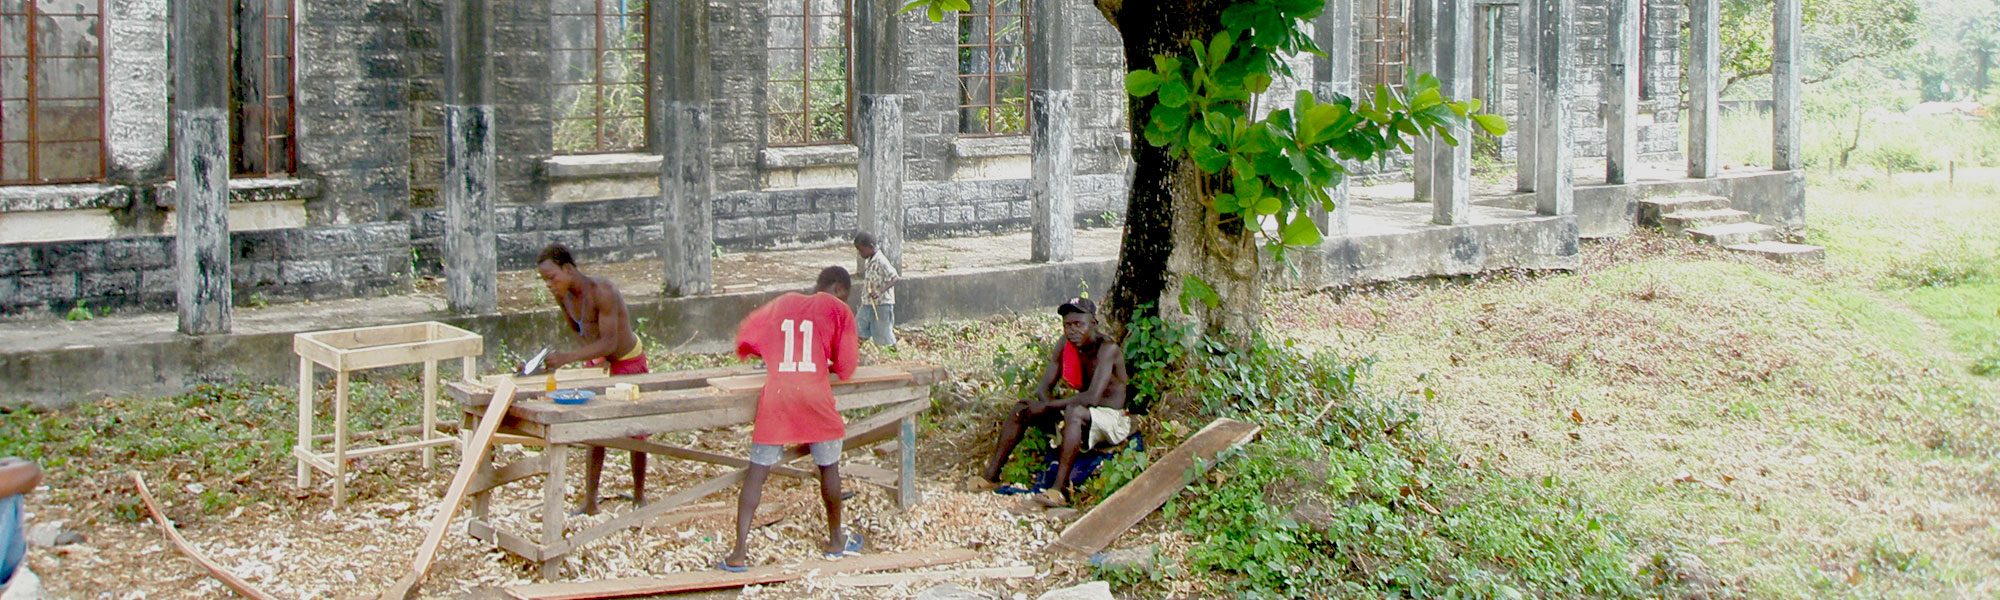 what's left of hatfield archer memorial hospital rotifunk sierra leone 2004